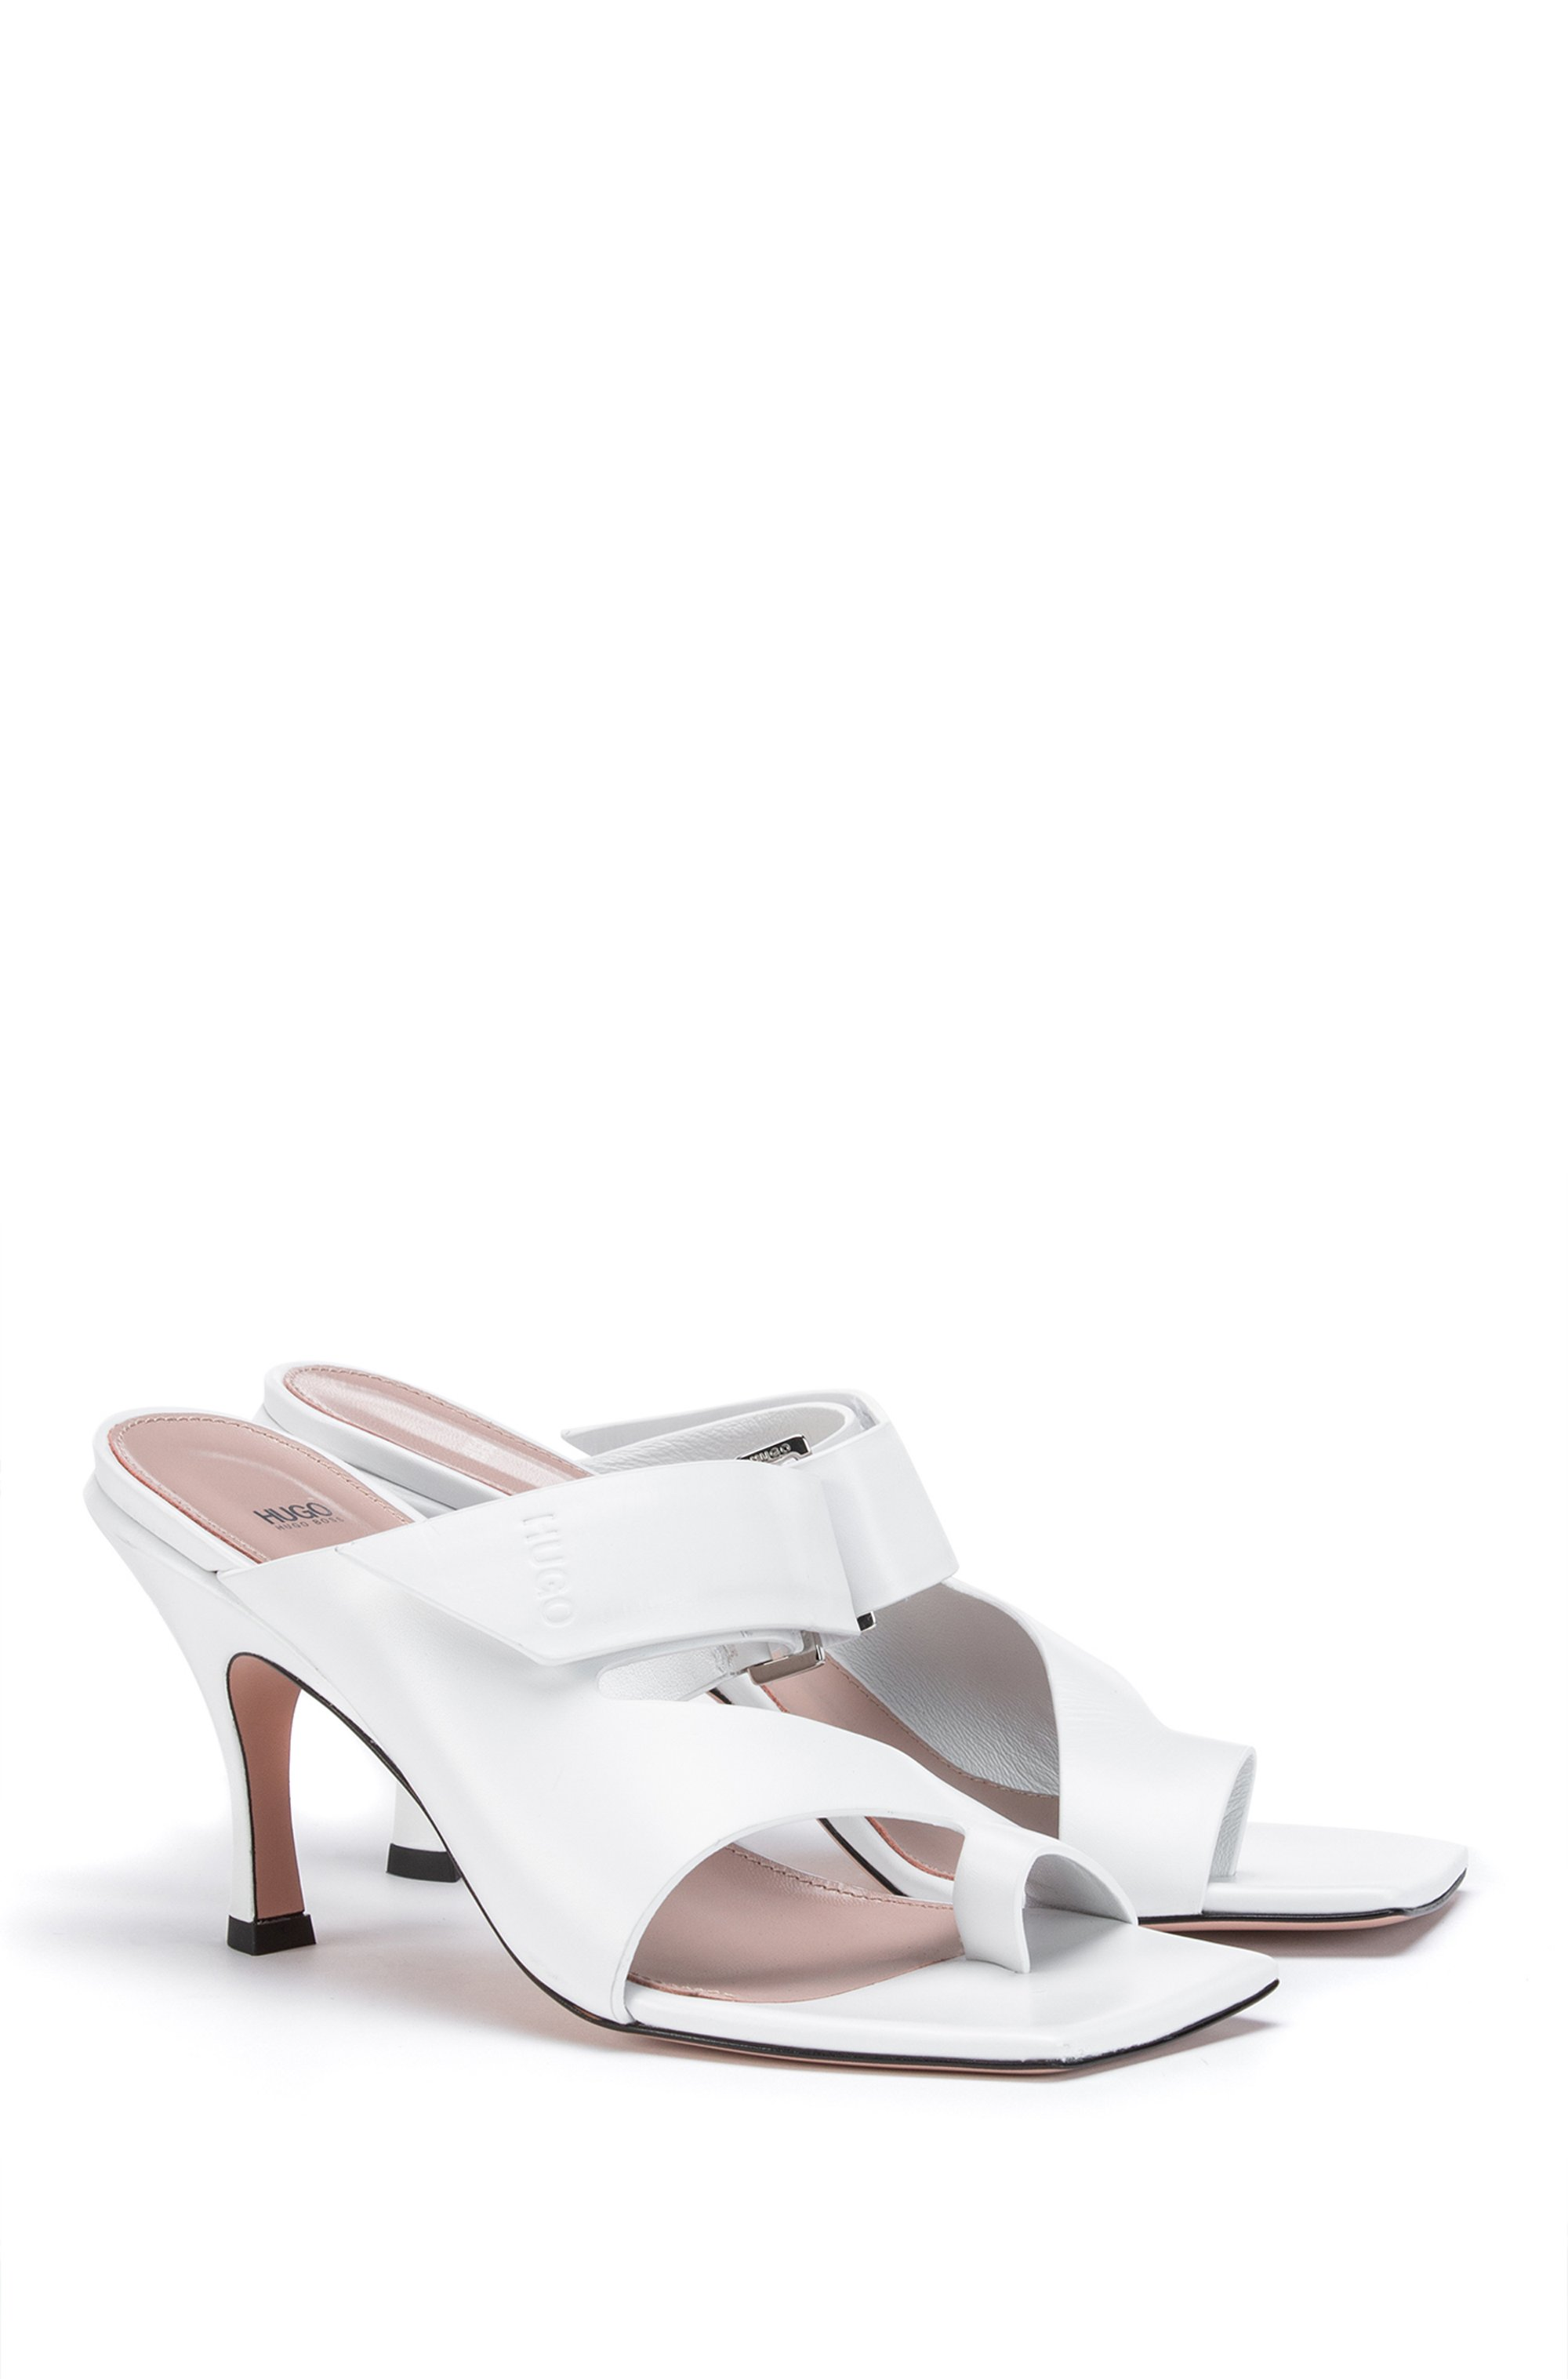 Square-toe mules in leather with strap detail